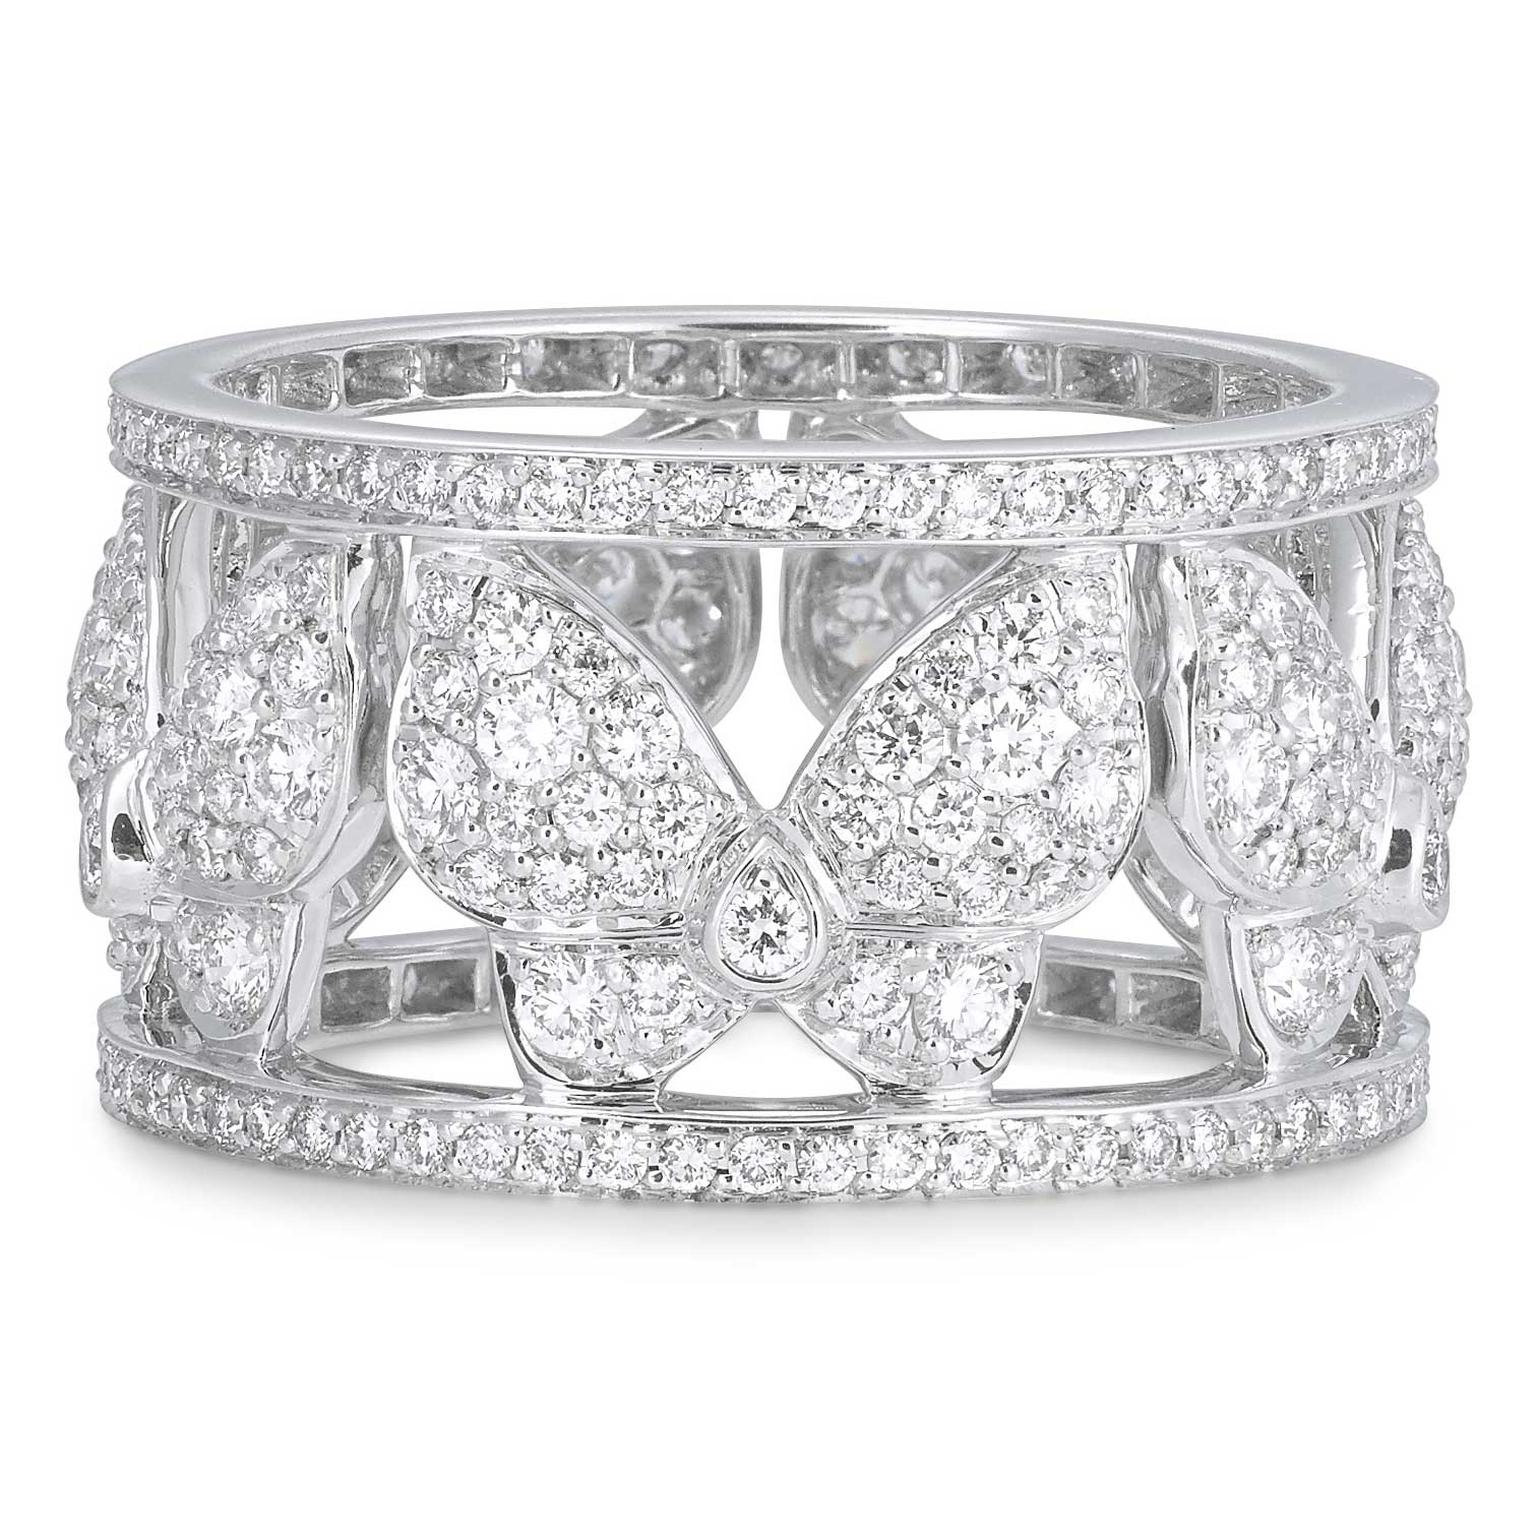 VanLeles diamond butterfly eternity ring